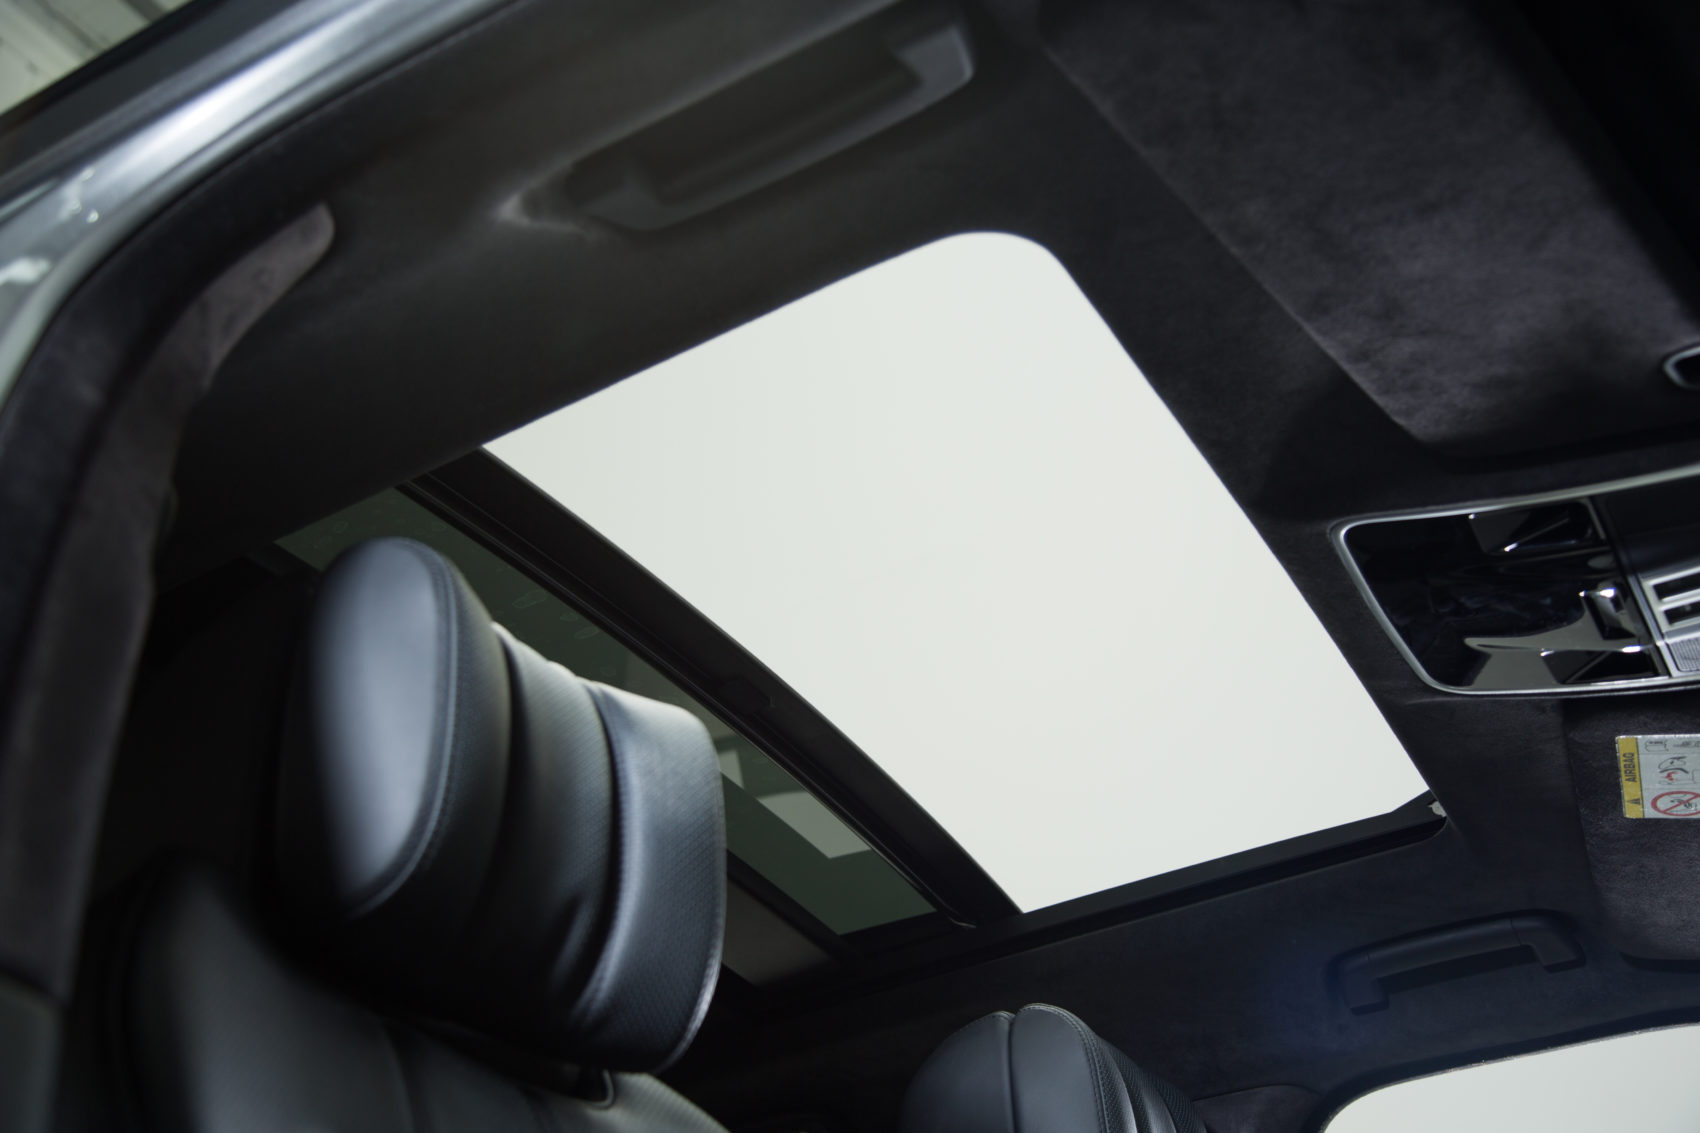 Sunroof in luxurious SUV